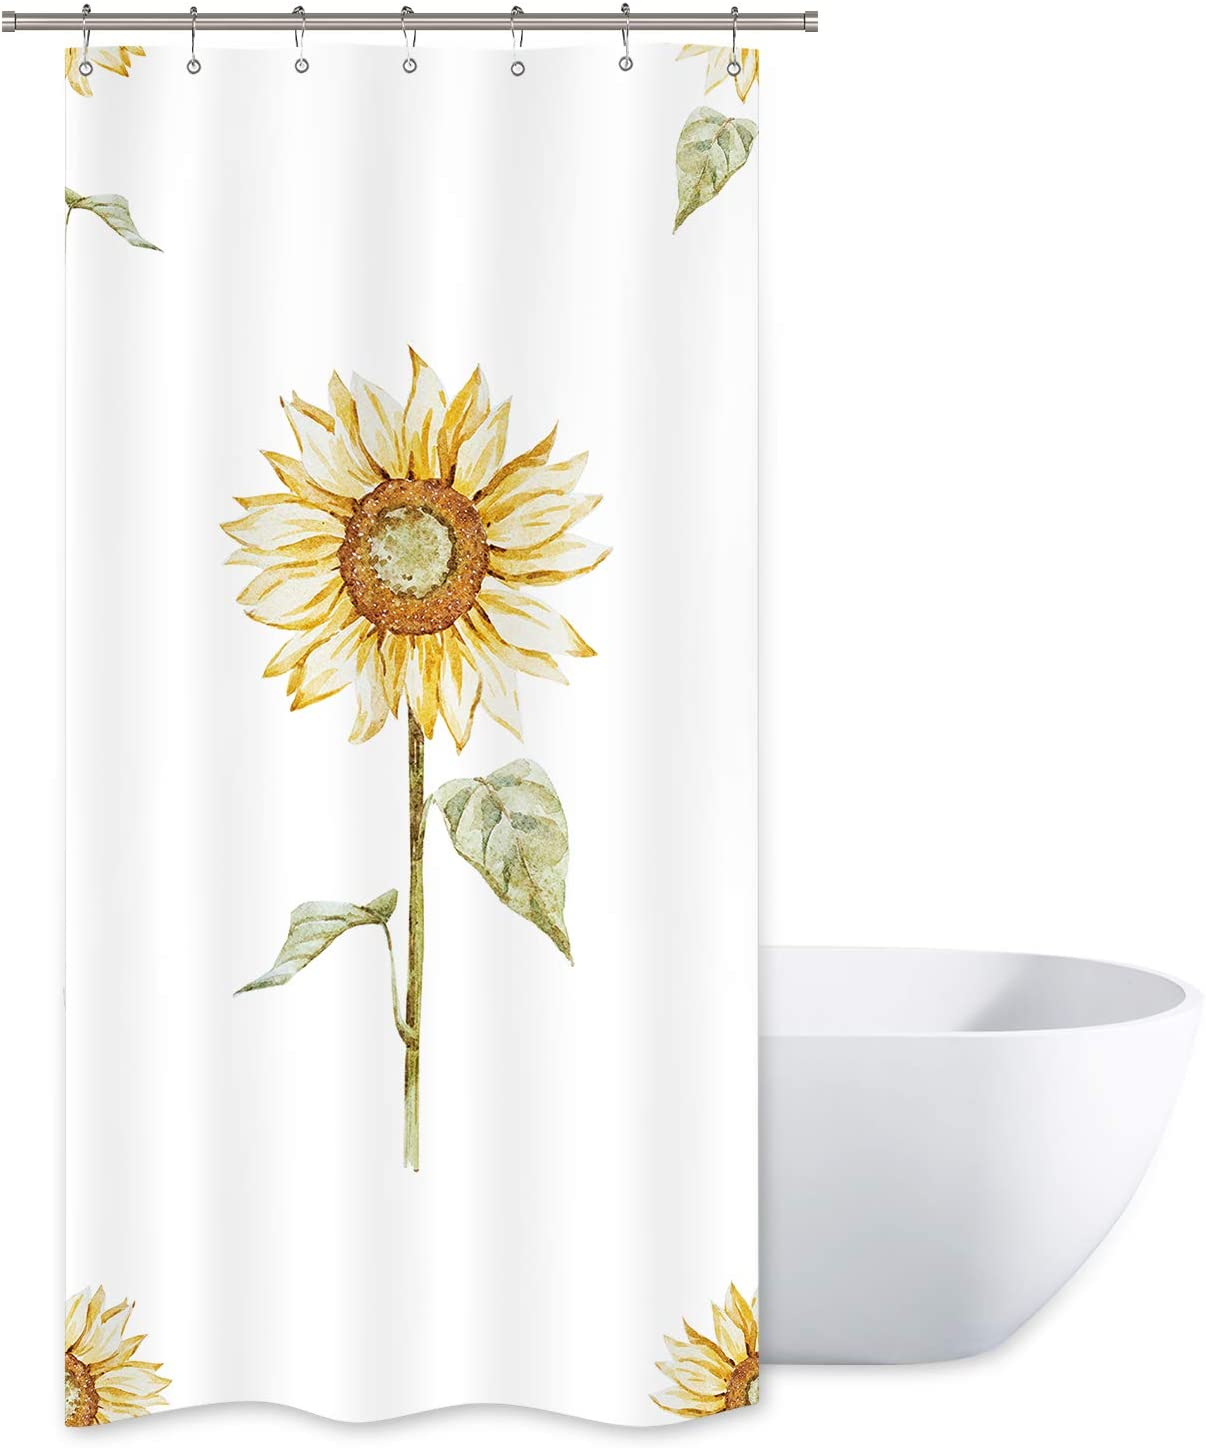 Riyidecor Yellow Sunflower Shower Curtain Green Leaves Floral Rustic Nature Spring Durable White Polyester Fabric Waterproof Bathroom Home Drape Decorative 36x72 Inches 12 Plastic Hooks